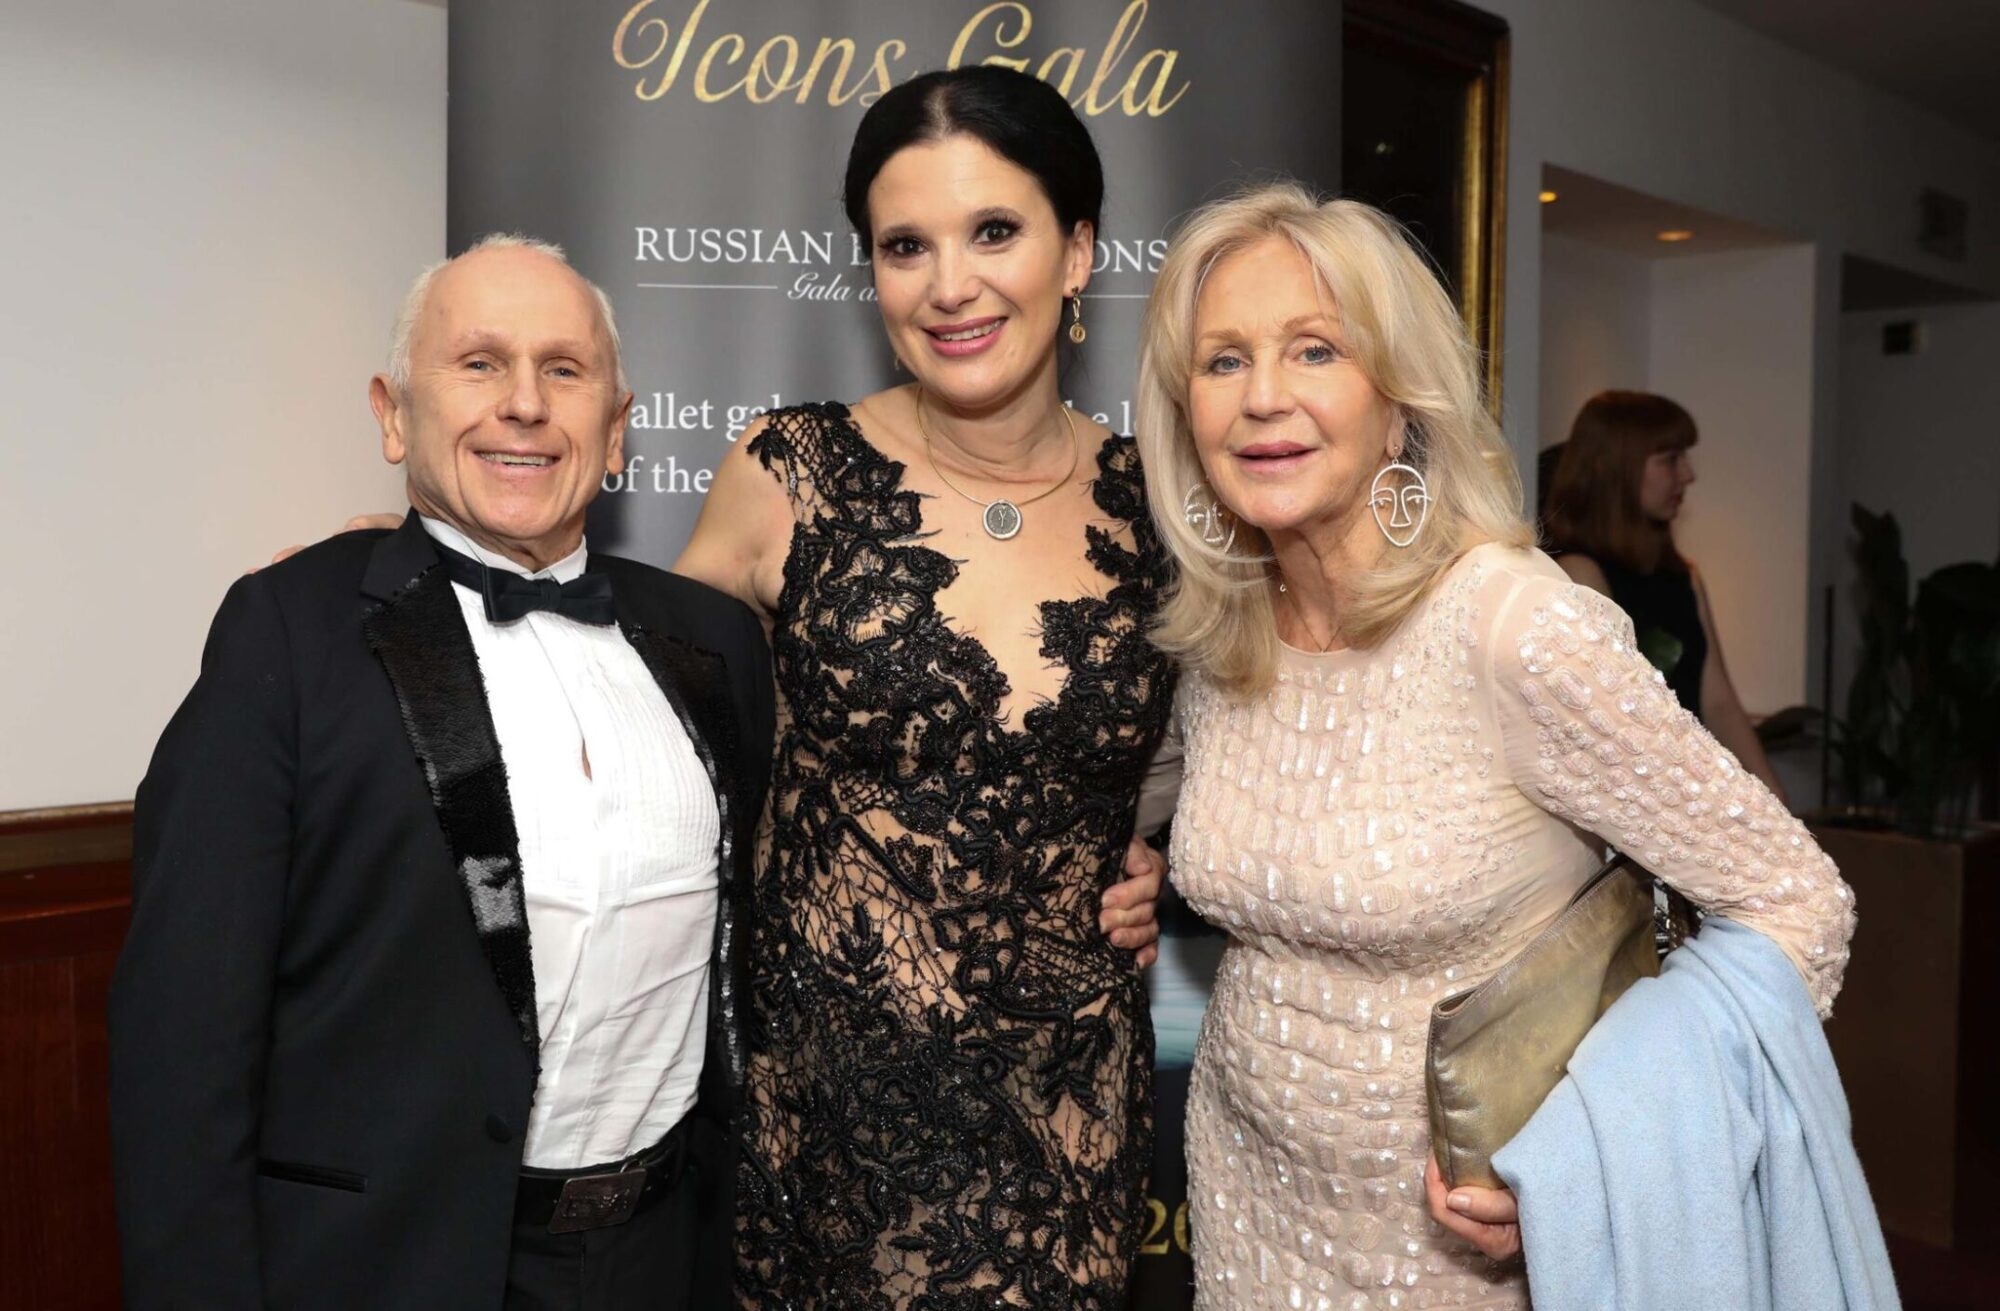 LONDON, ENGLAND - MARCH 31, 2019. Guests of the Russian Ballet Icons Gala Dinner: Wayne Sleep, Olga Balakleets, Liz Brewer (Photo by David M. Benett / Getty Images for Ensemble Productions Ltd)